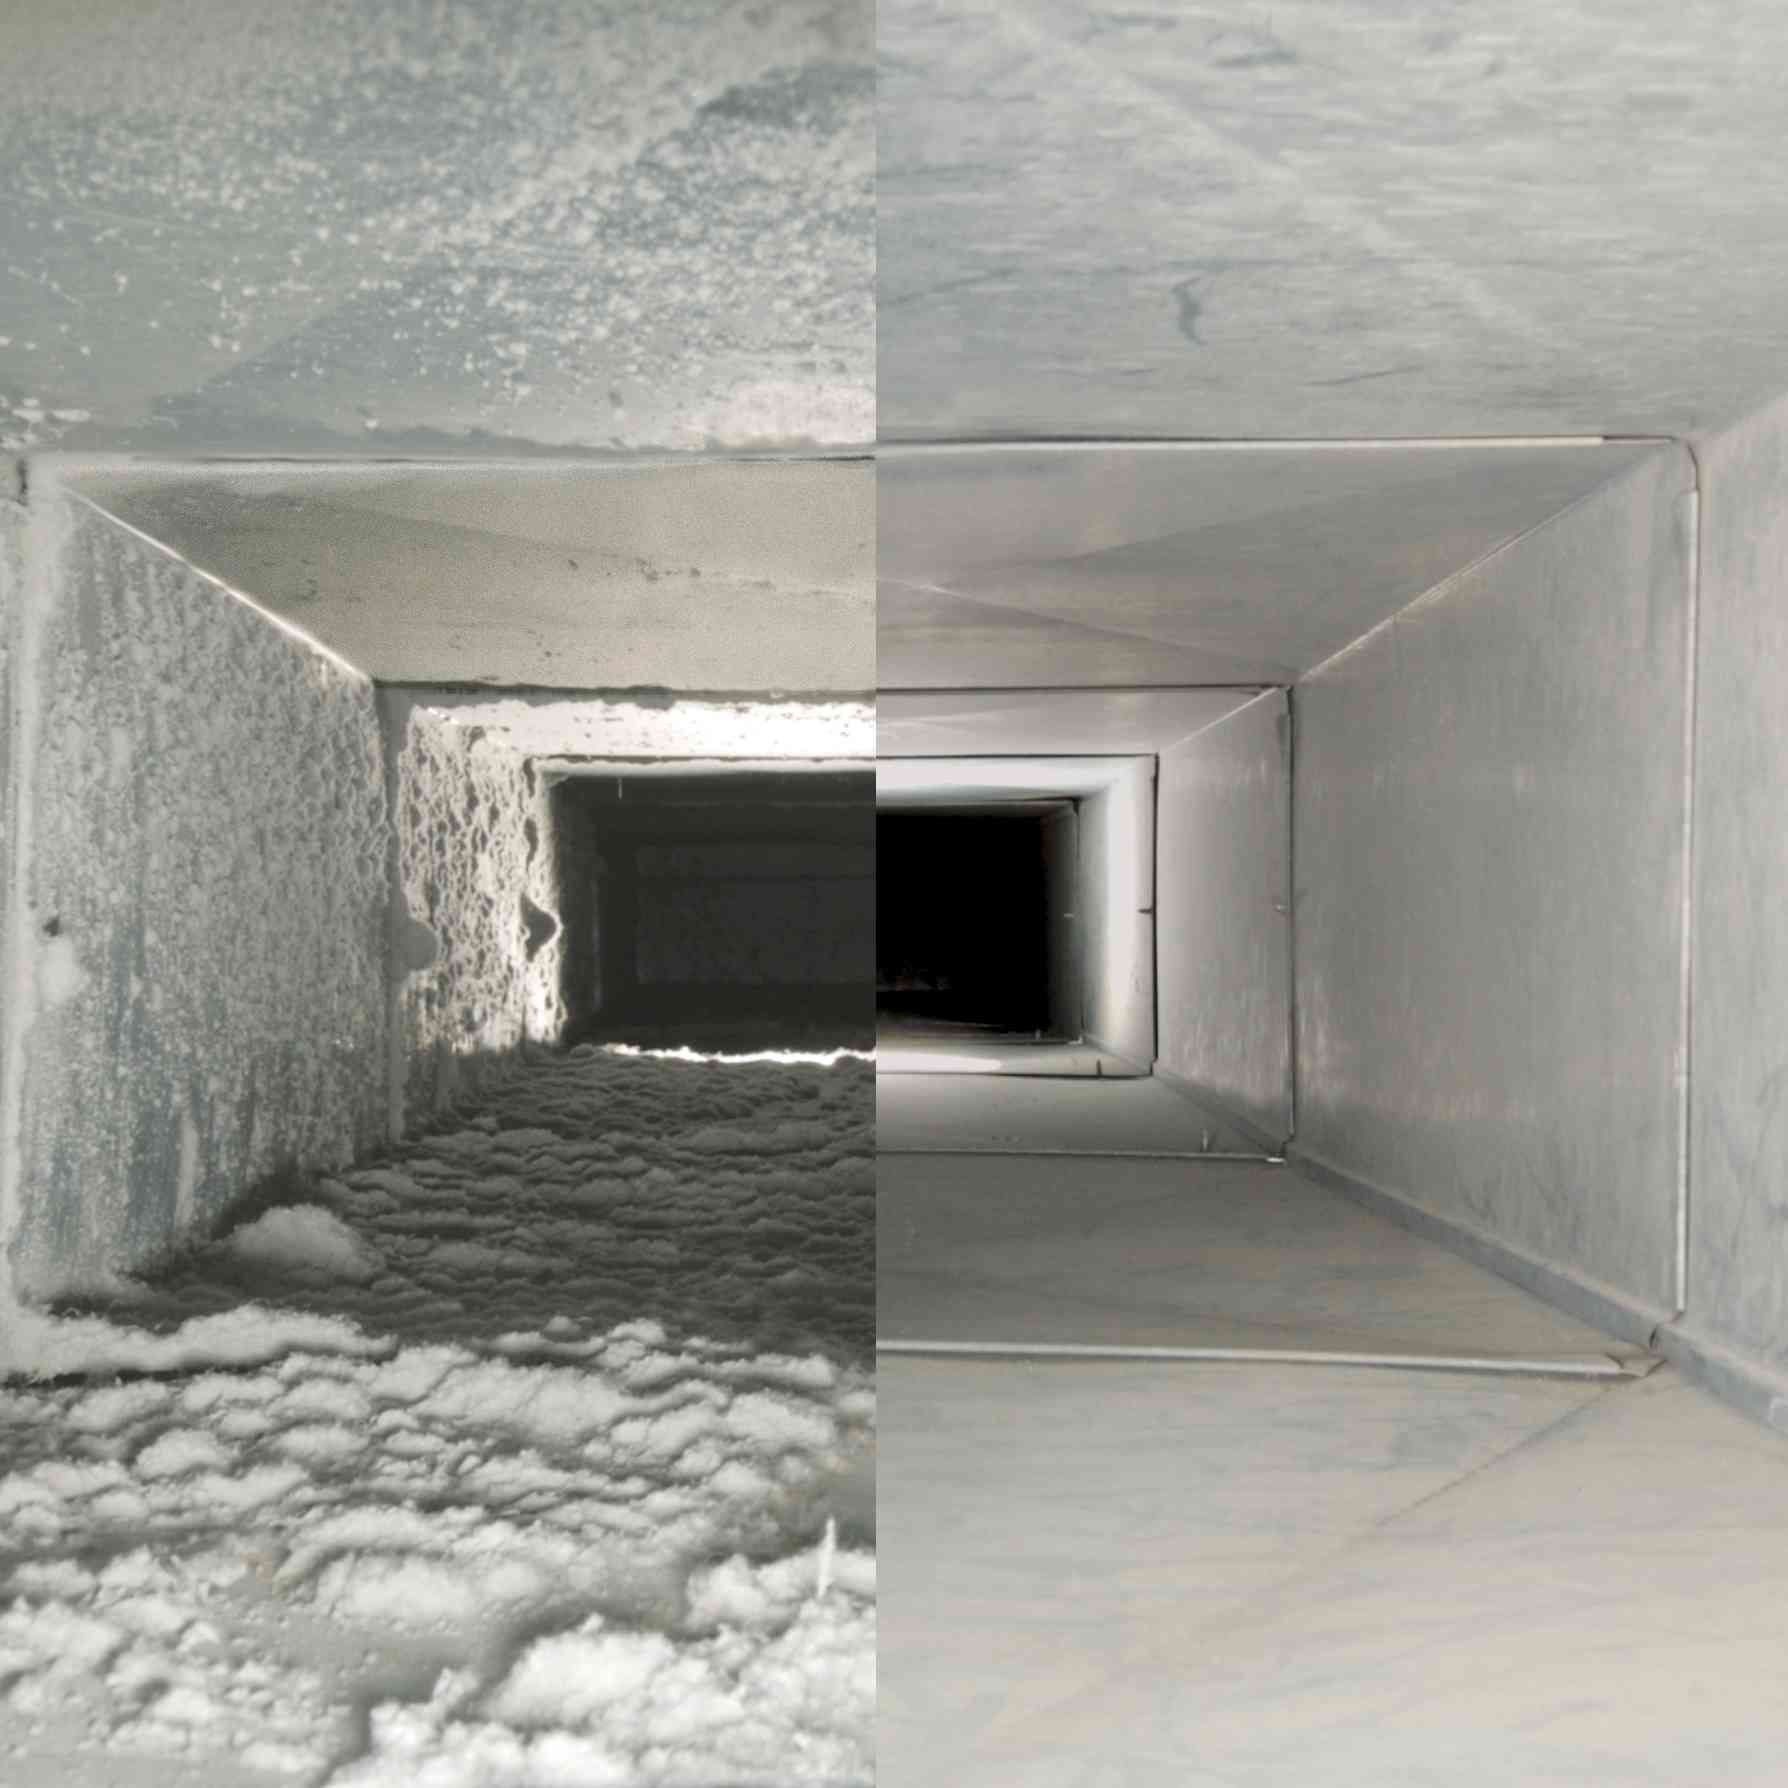 #6D685E Ac Molds Saniservice Blog Page 2 Most Effective 7325 Whole House Duct Cleaning pictures with 1788x1788 px on helpvideos.info - Air Conditioners, Air Coolers and more